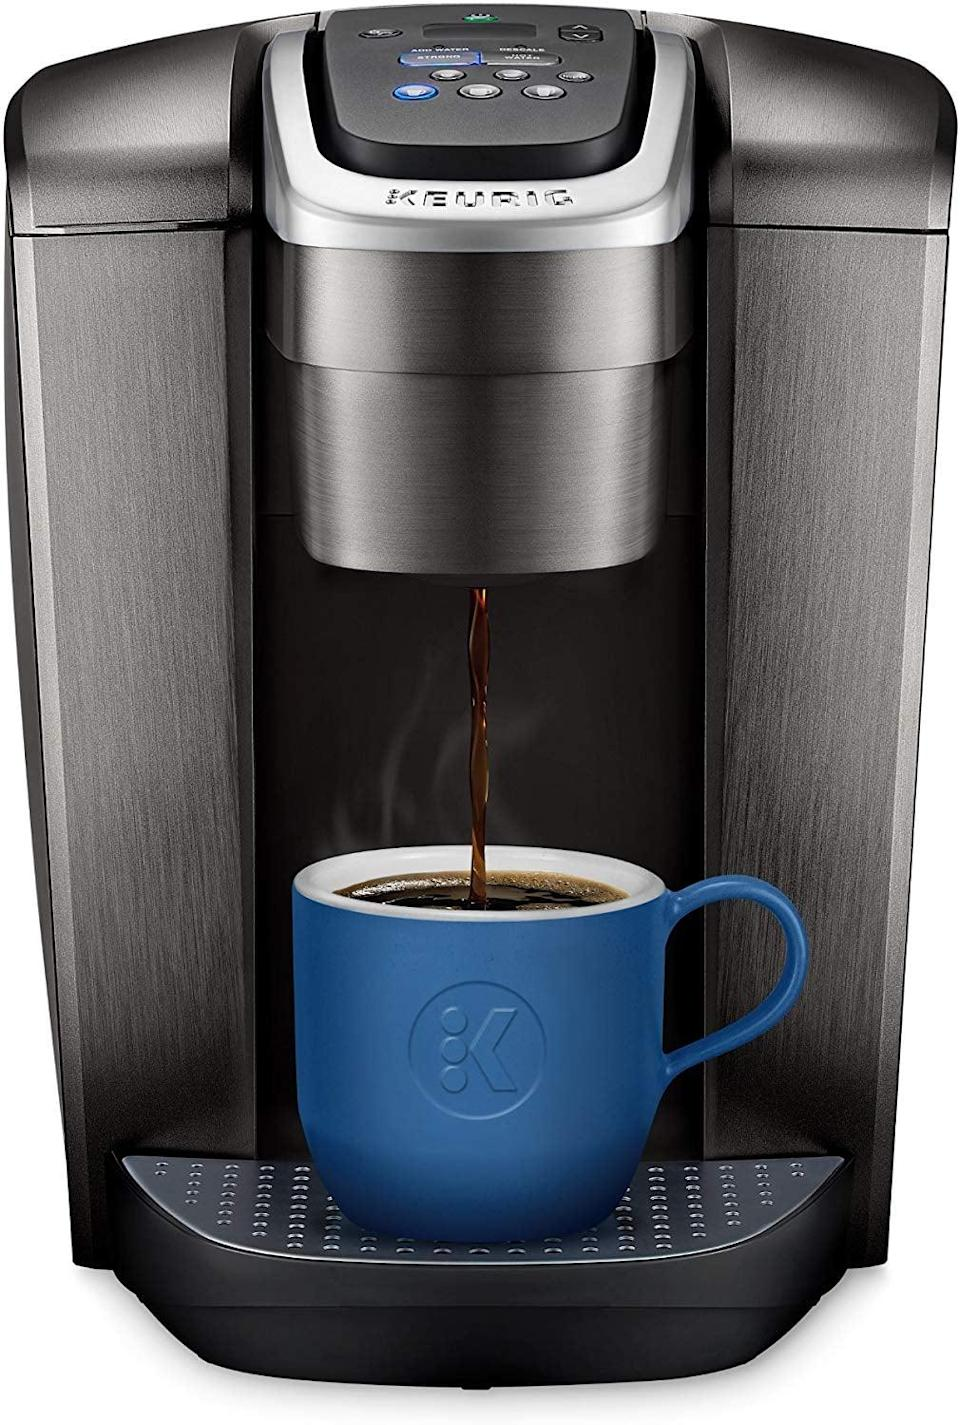 <p>They can enjoy their morning cup of coffee easily with this <span>Keurig Single Serve K-Cup Pod Coffee Maker</span> ($120).</p>